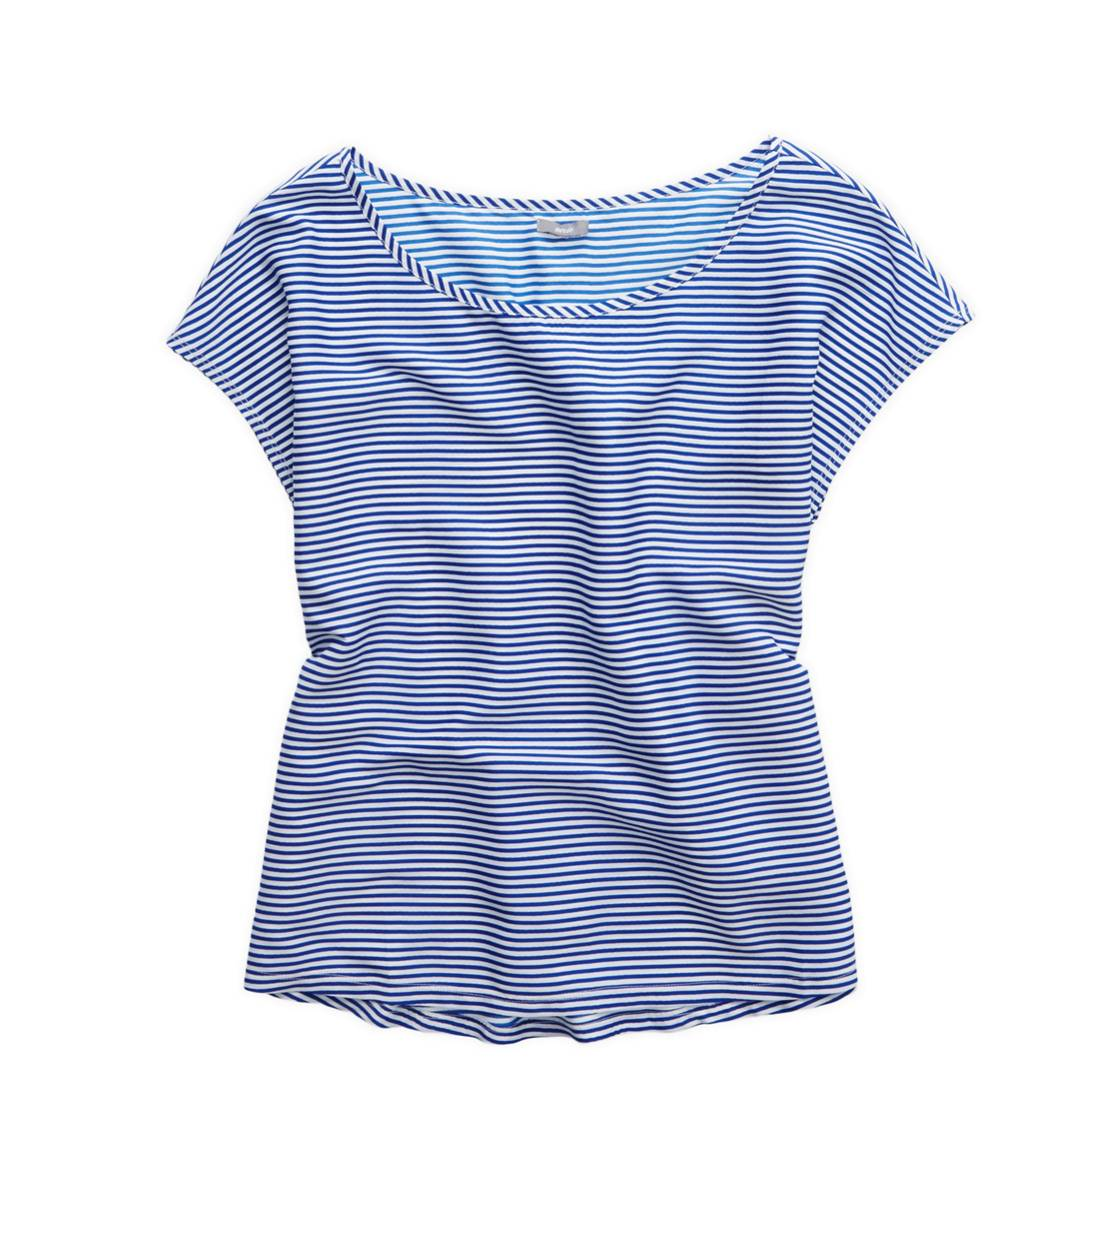 Cobalt Shade Aerie Striped Boxy T-Shirt